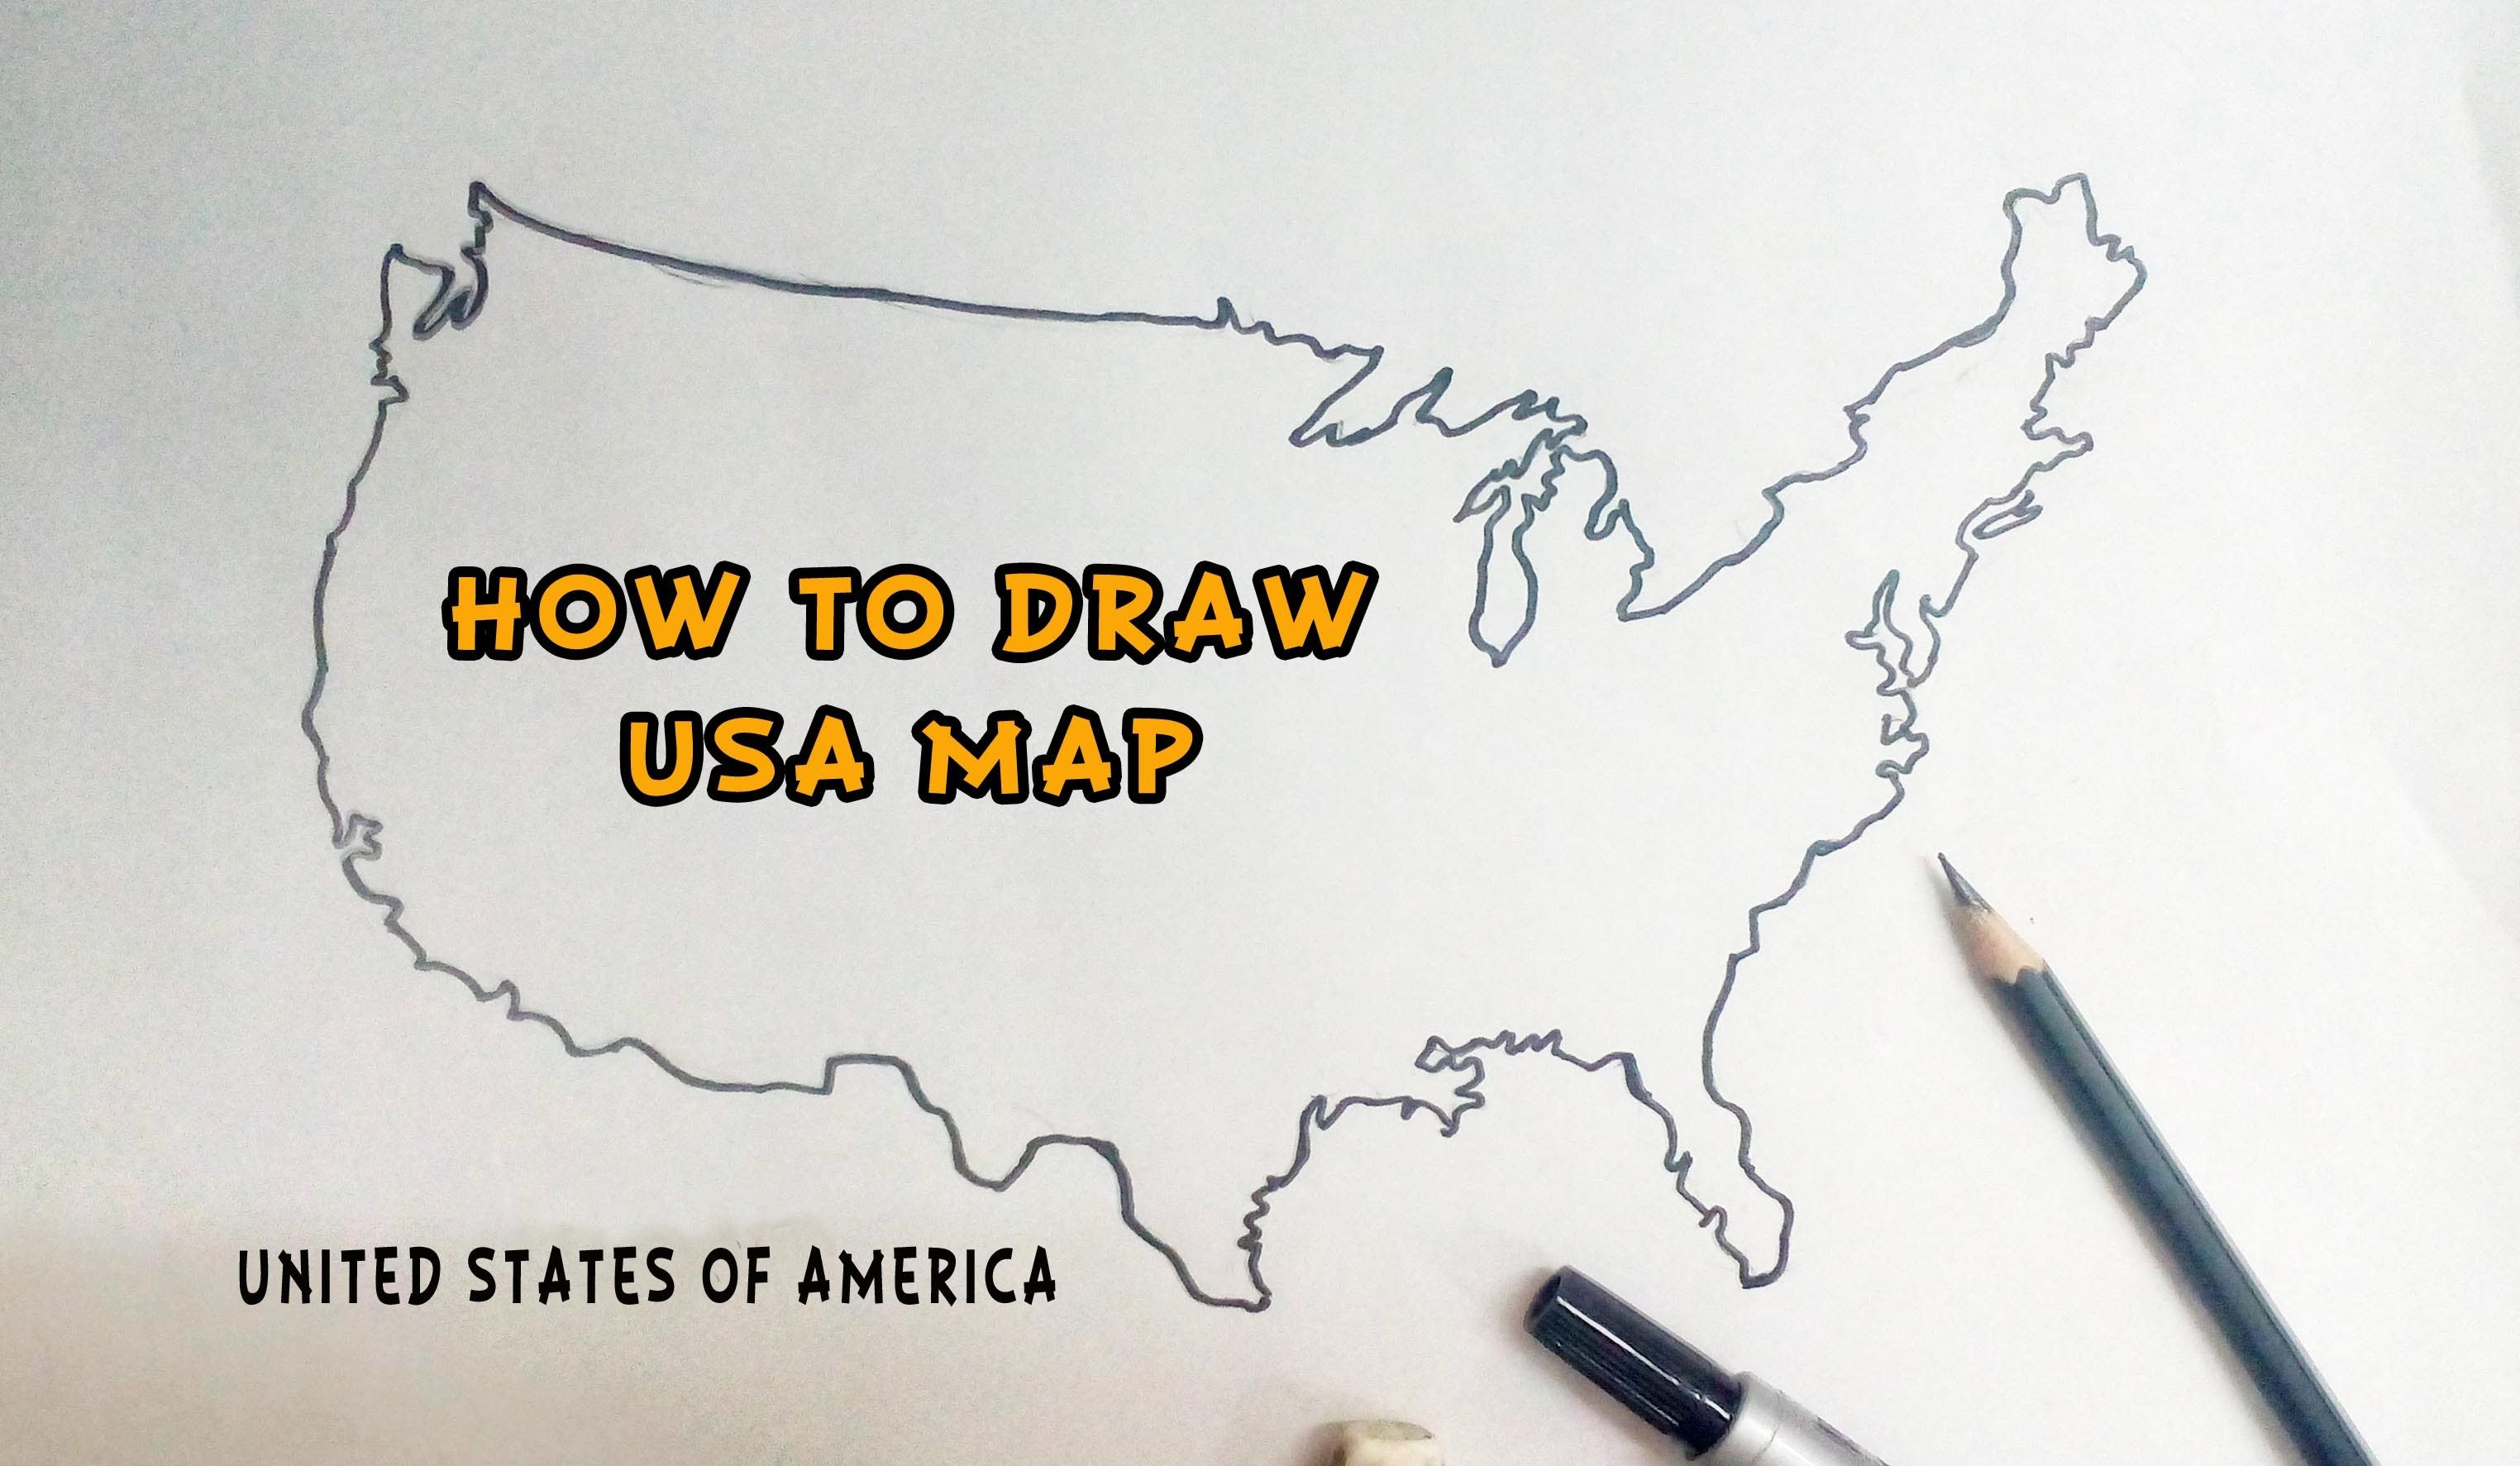 How To Draw United States Of America USA Map Drawing Tutorials Battu ...